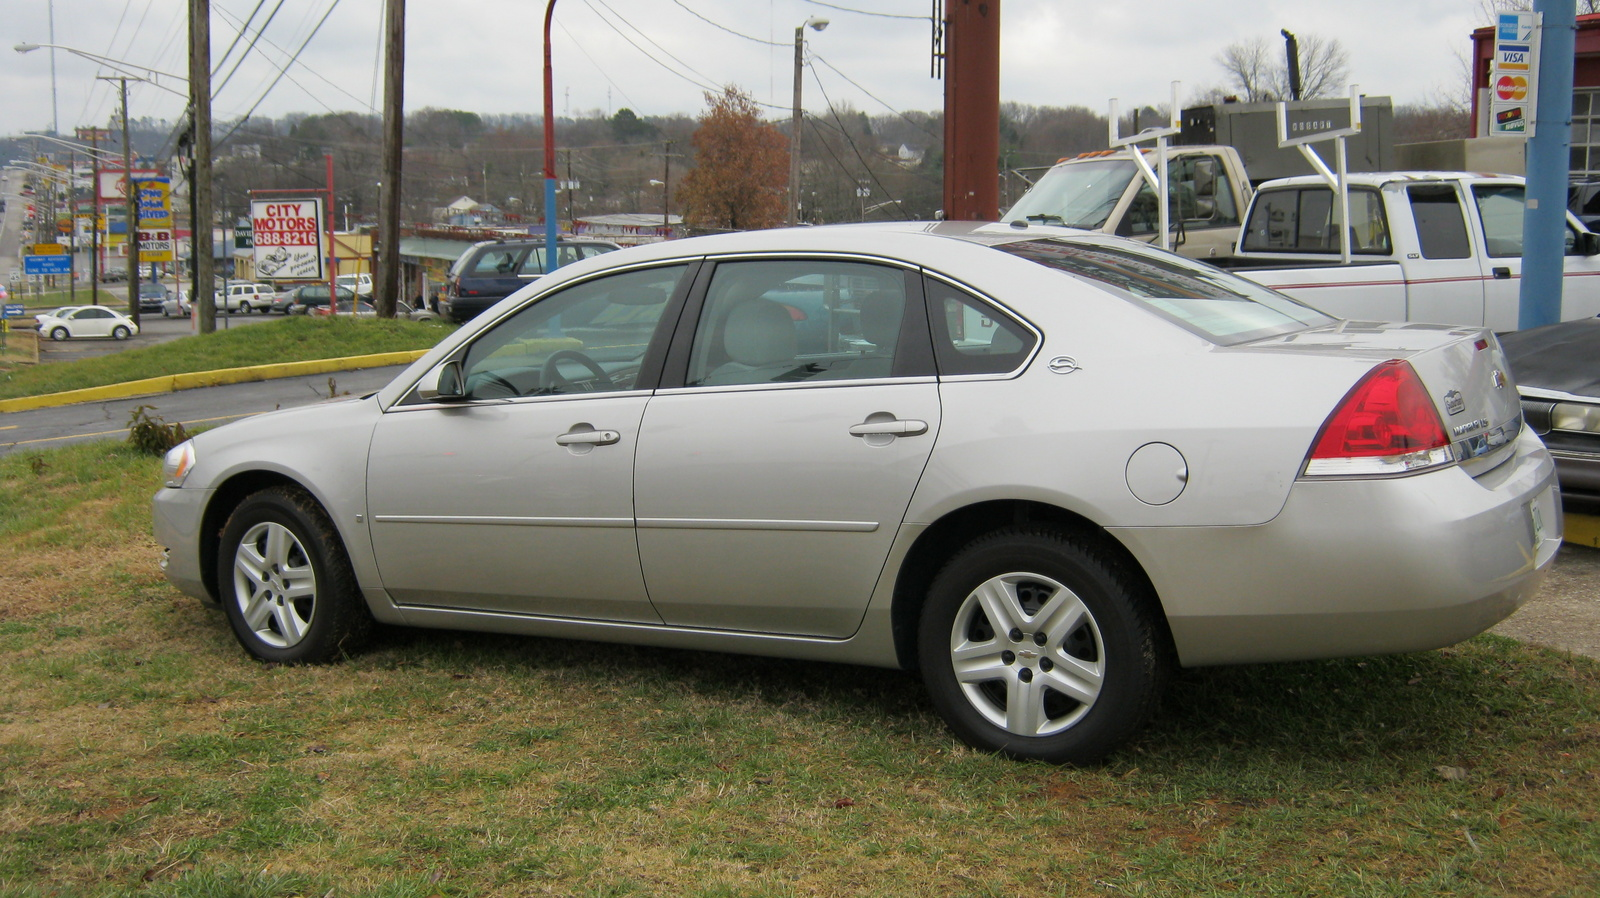 96 IMPALA moreover Stats likewise 2014 Impala in addition Supernatural Liberado Os Nomes Dos Episodios Da 13a Temporada besides 1960490 Official 24 365 Sybian Speaking Just A Moment. on 03 chevy impla